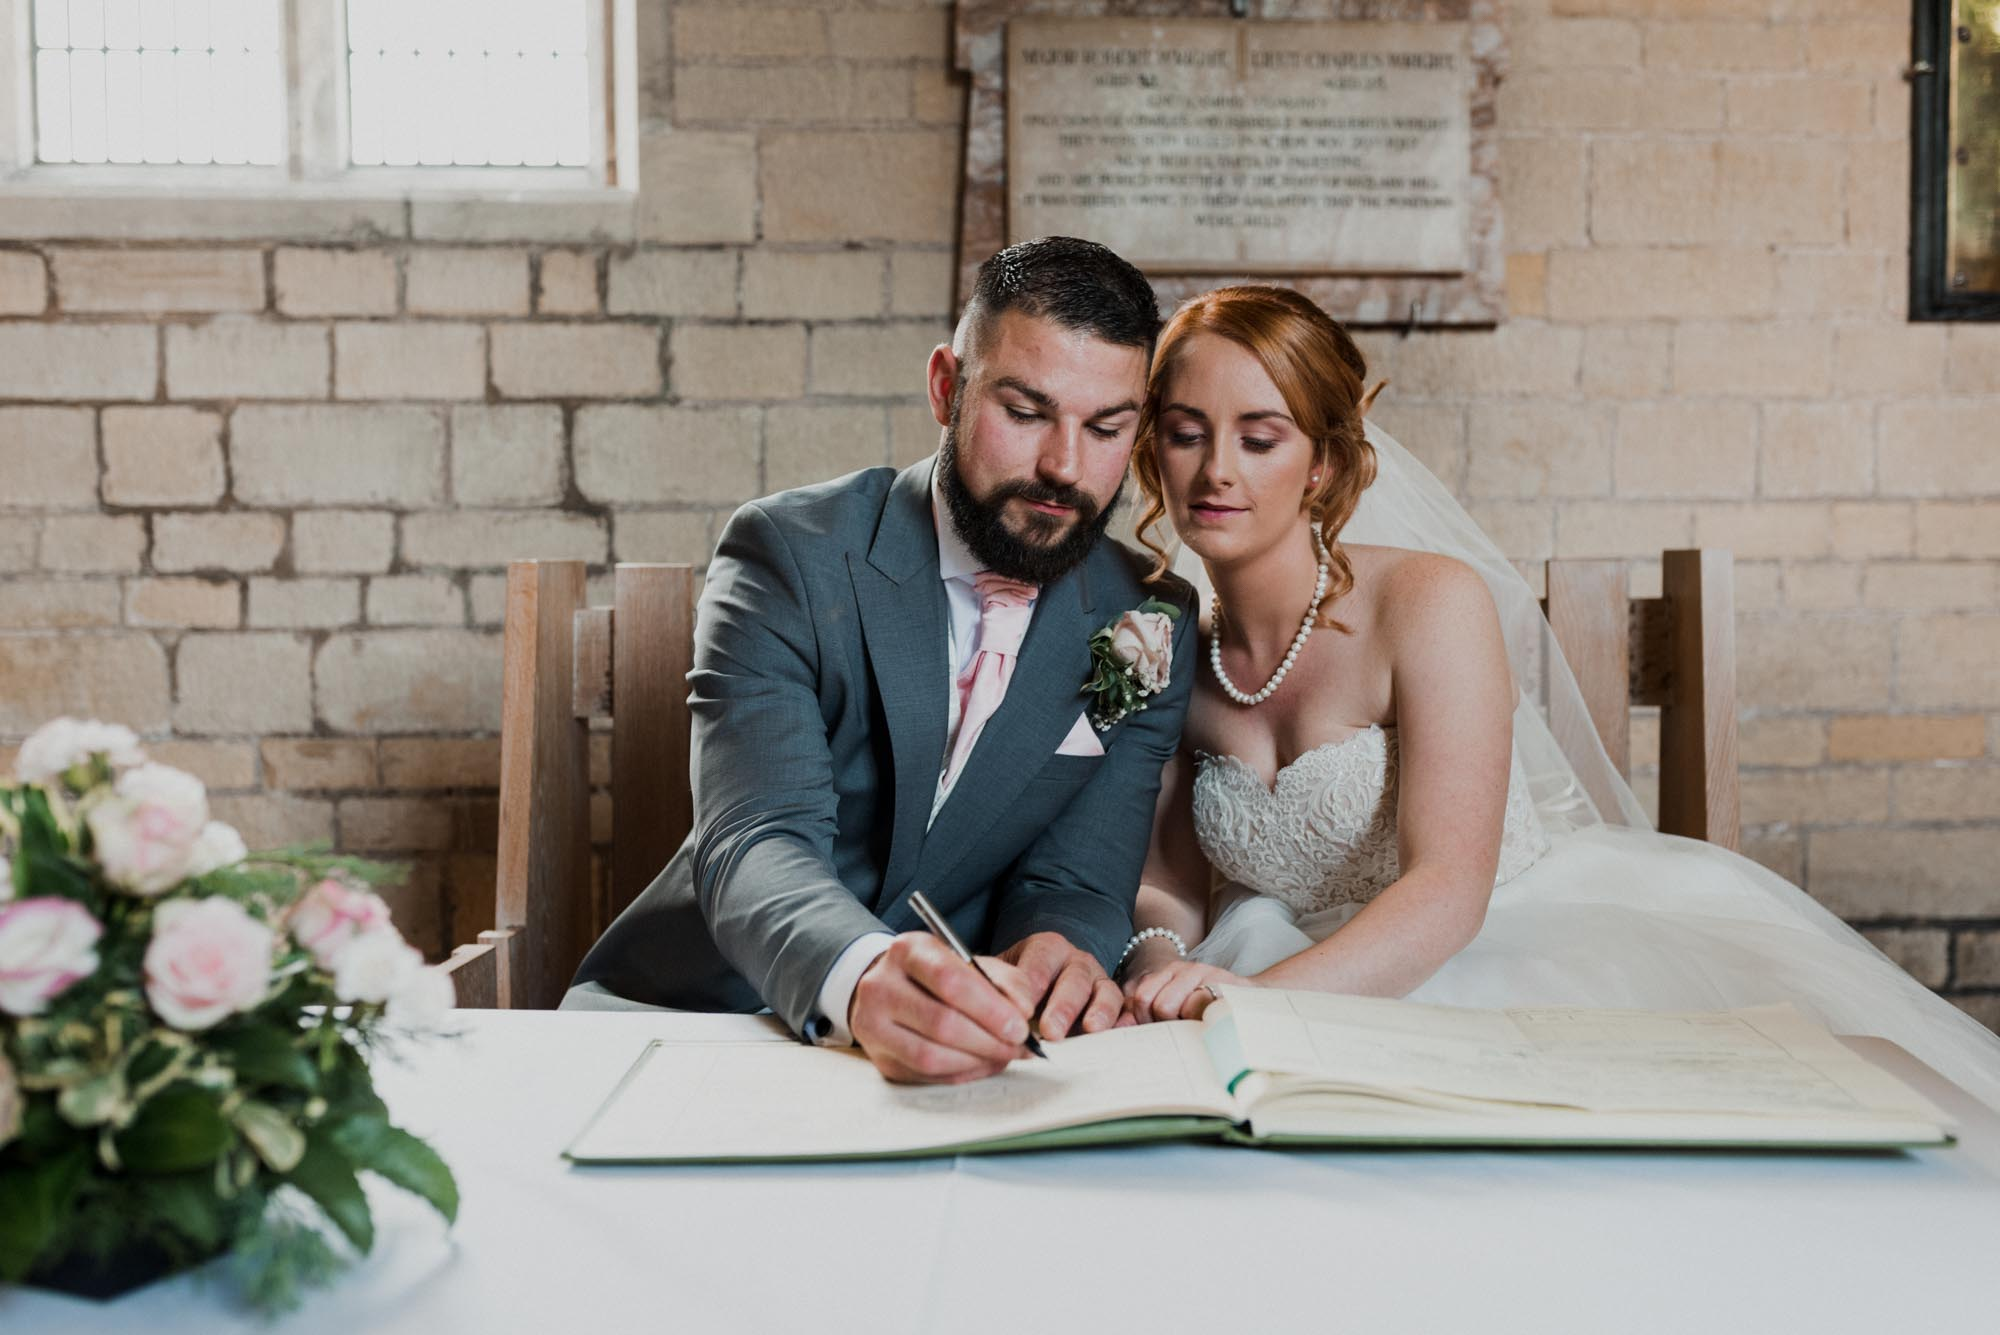 dinnington wedding photographer